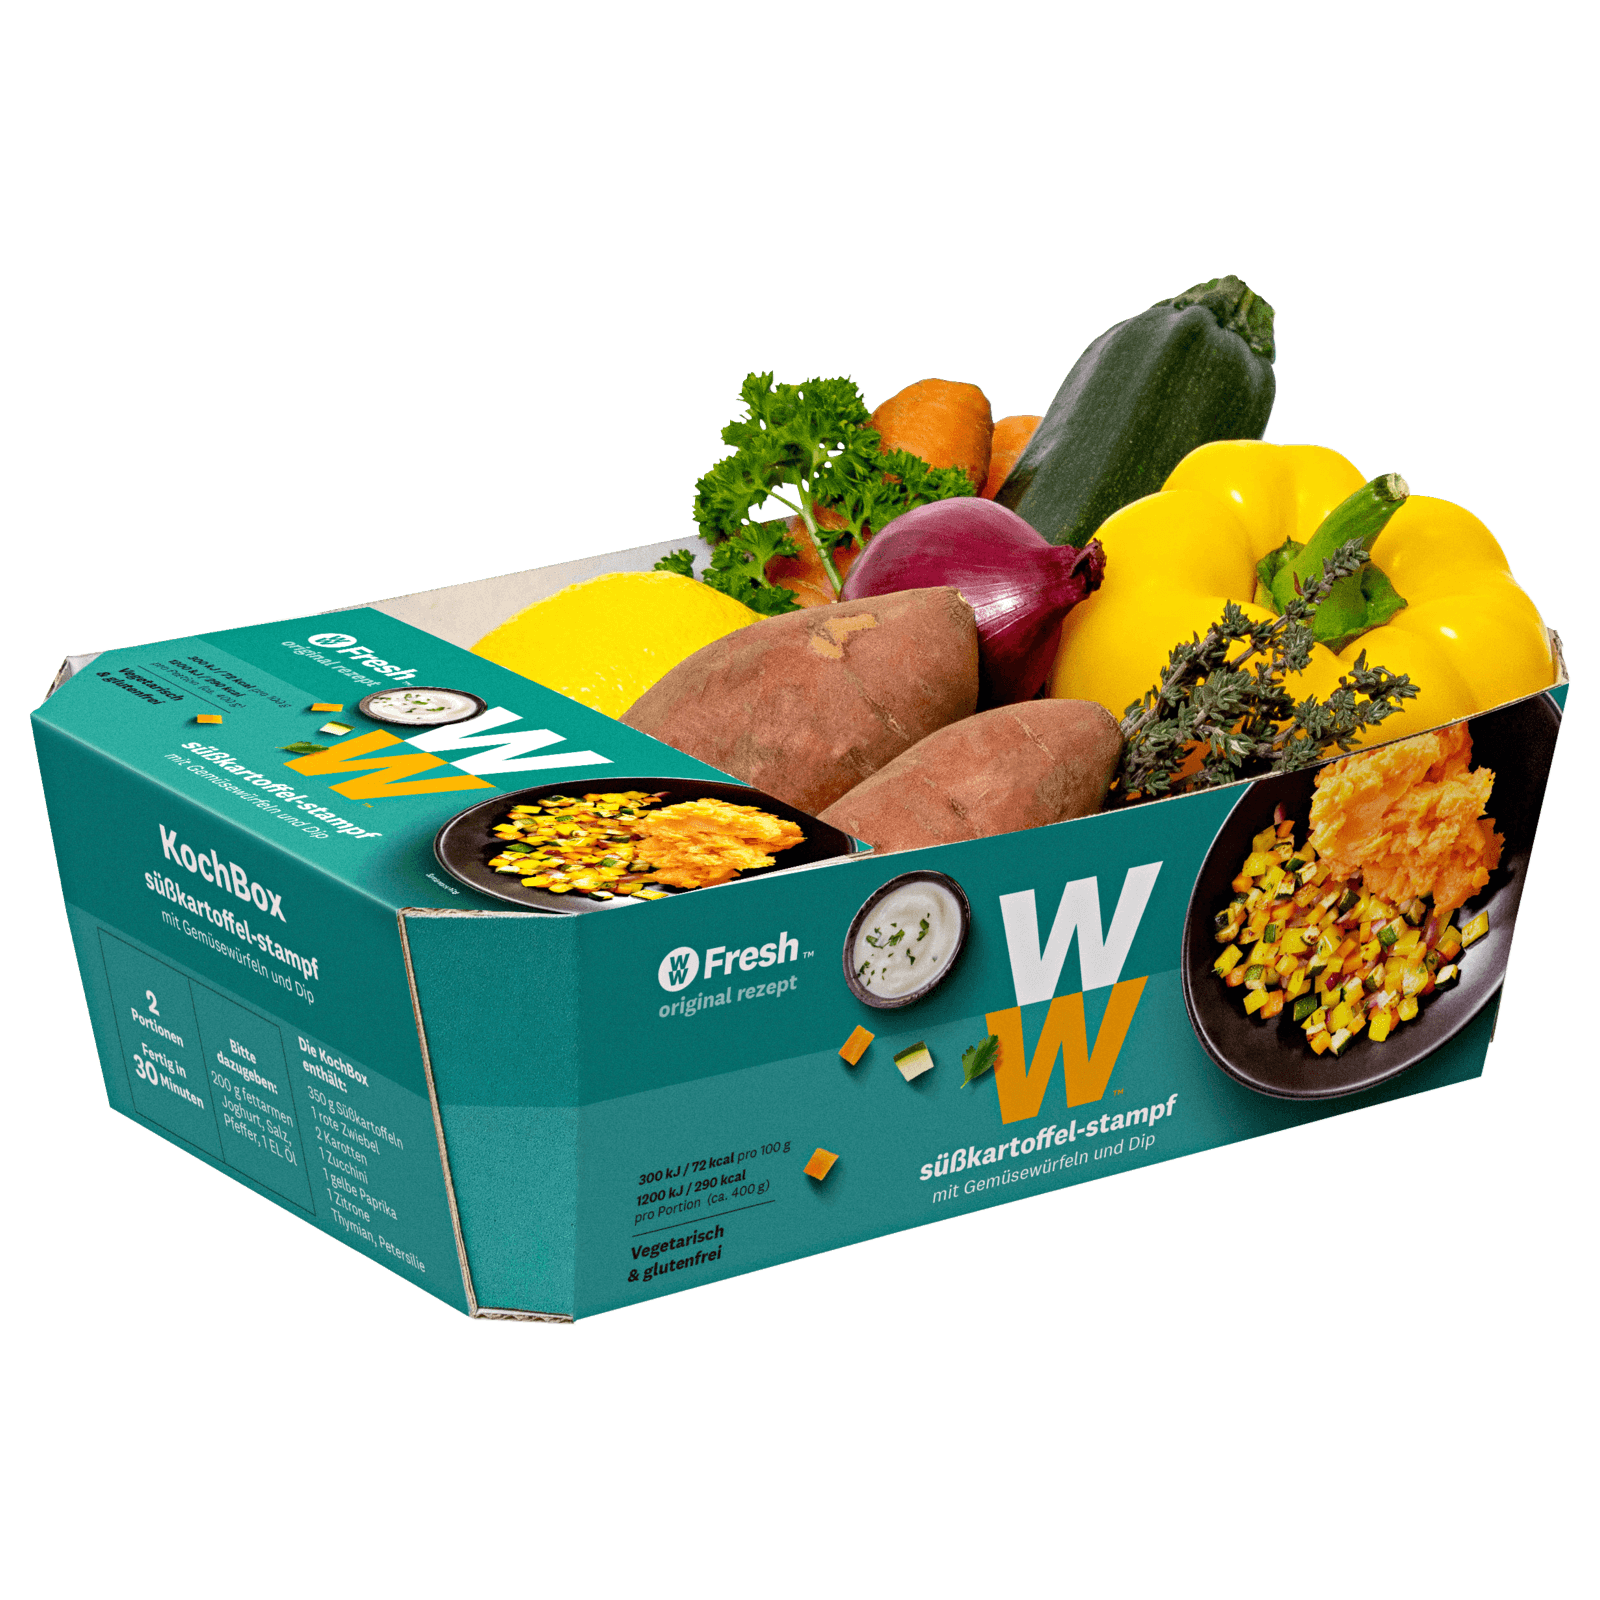 Weight Watchers Kochbox Süßkartoffelstampf